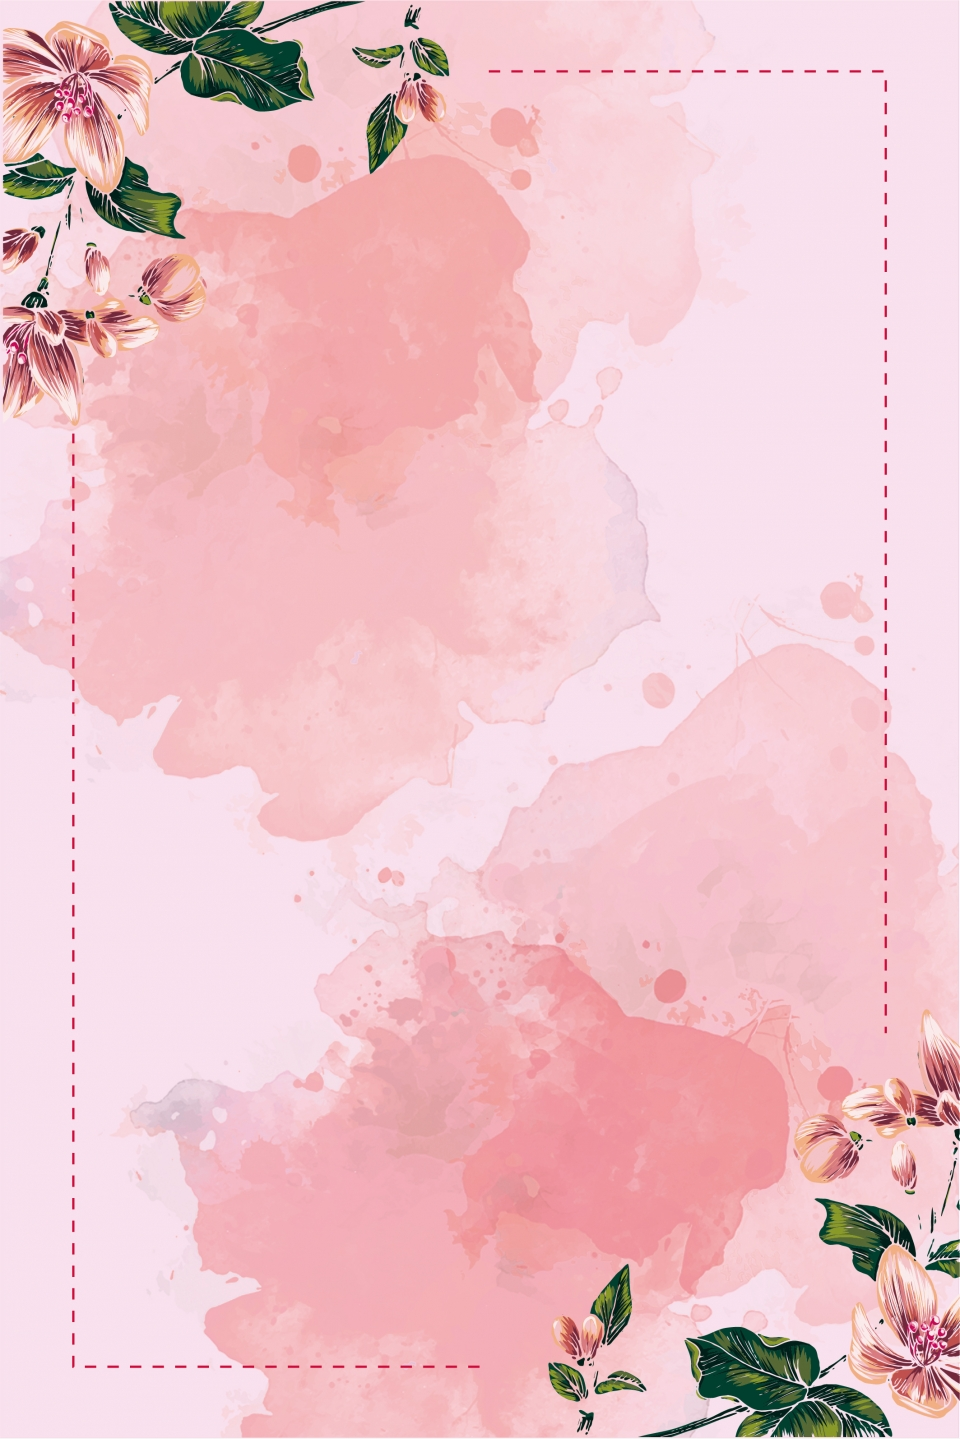 Creative Flower Tmall Wedding Expo Hd Background Beautiful Tmall E Commerce Background Image For Free Download,Necklace Grt Antique Jewellery Designs